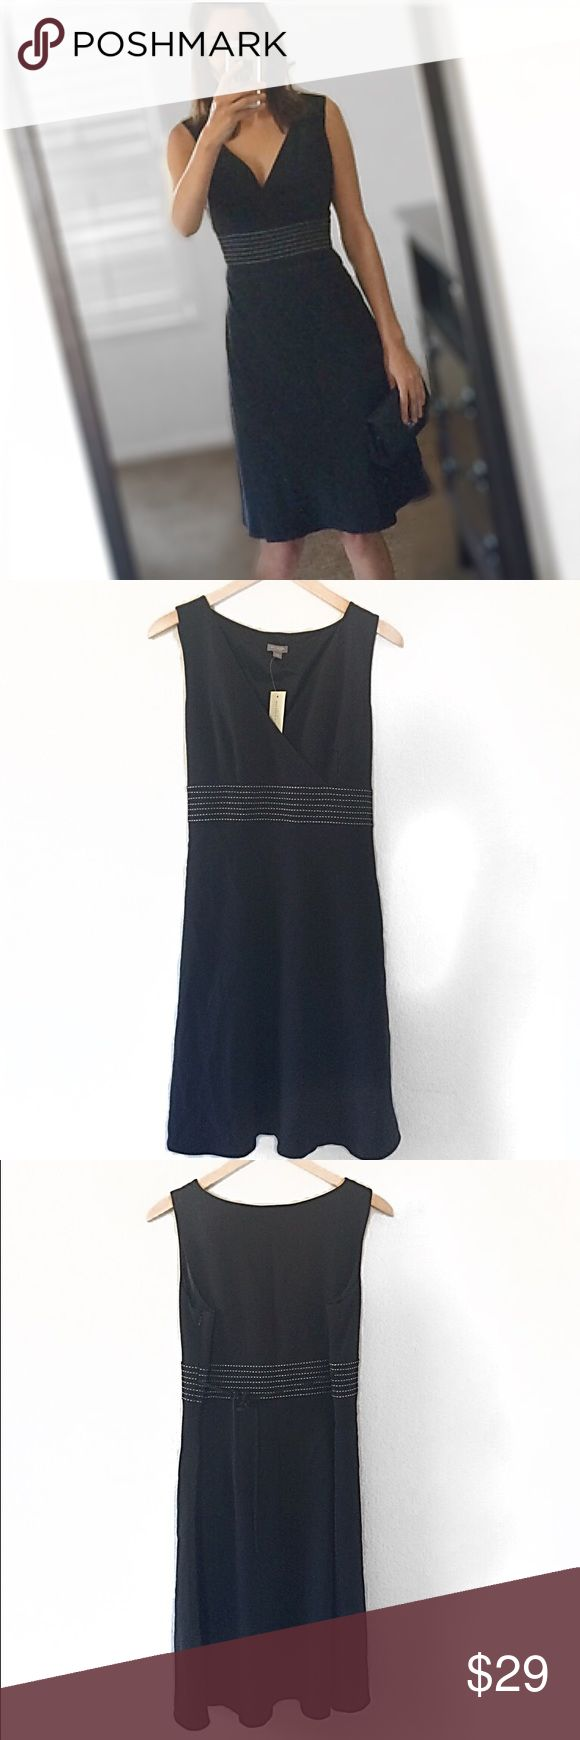 """ANN TAYLOR petite Black dress New with tags Ann Taylor petite dress size 14P. Wrap alike top, side zipper. Lined, it has empire waist design with waist straps to adjust the waist line.Dimensions: Bust: 20.5"""", waist: 18"""", length from shoulders: 35.5"""". This dress is absolutely gorgeous! 💛bundle and save💛 Ann Taylor Dresses Midi"""